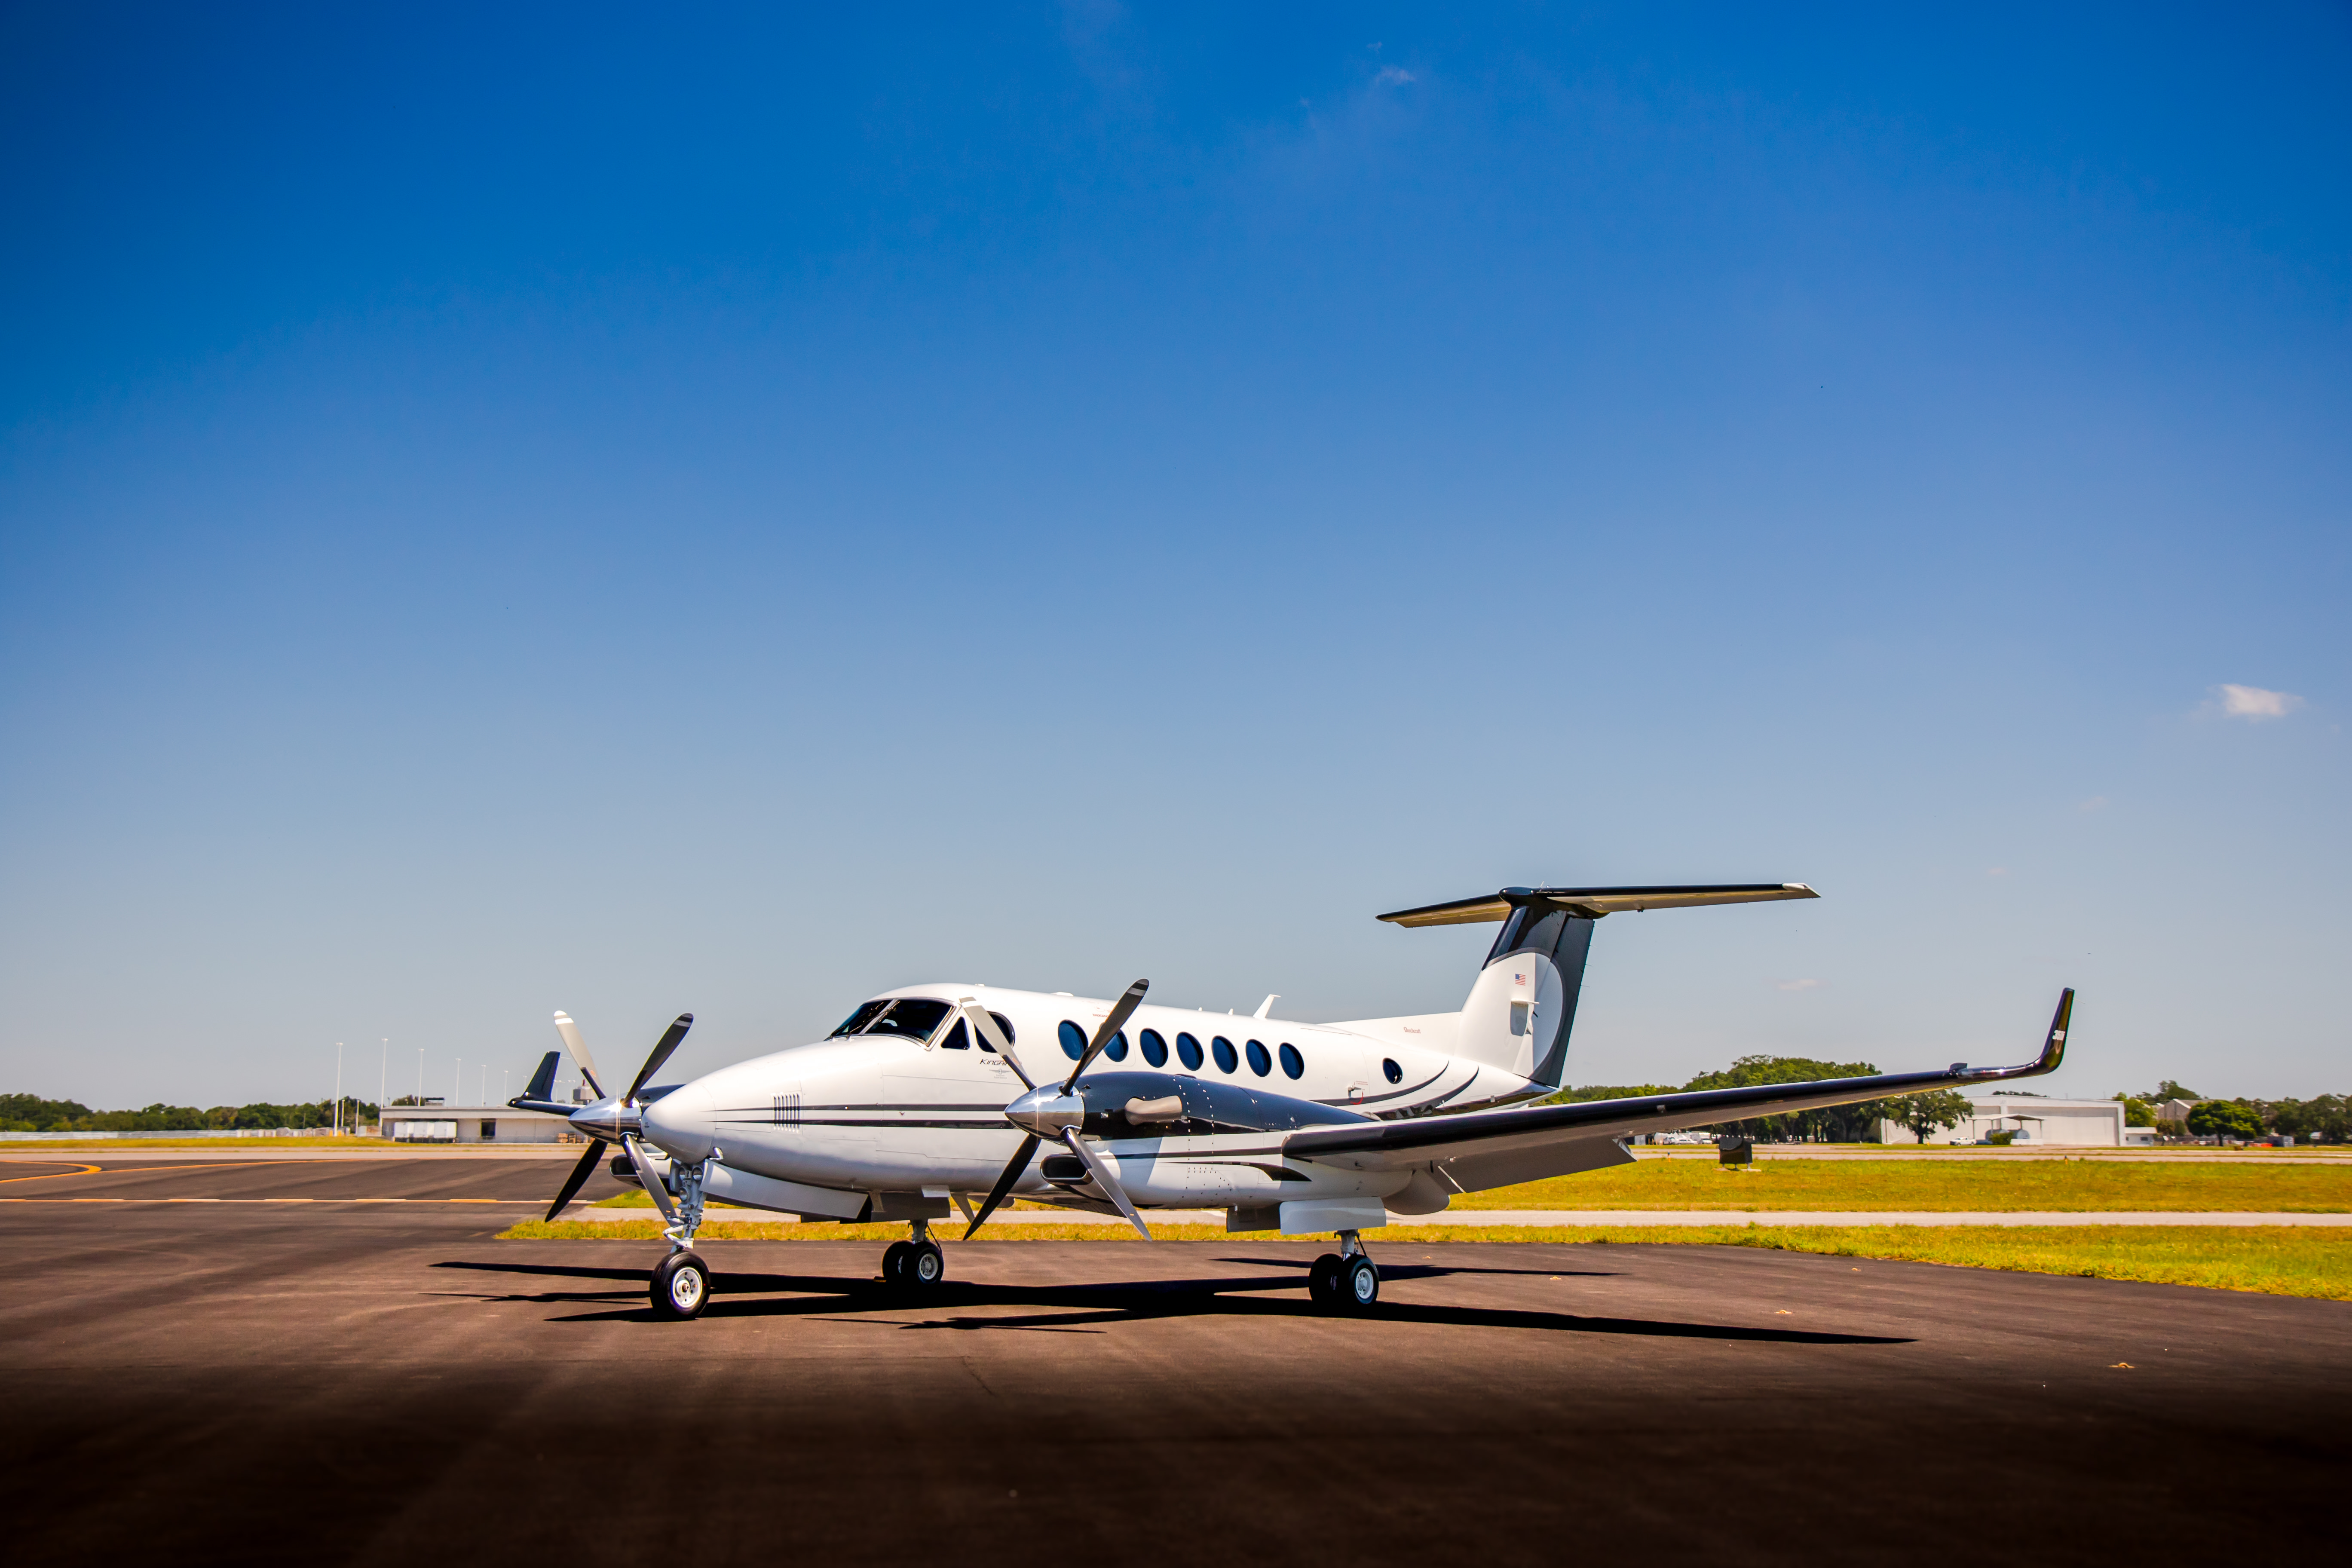 Aircraft Listing - King Air 350i listed for sale